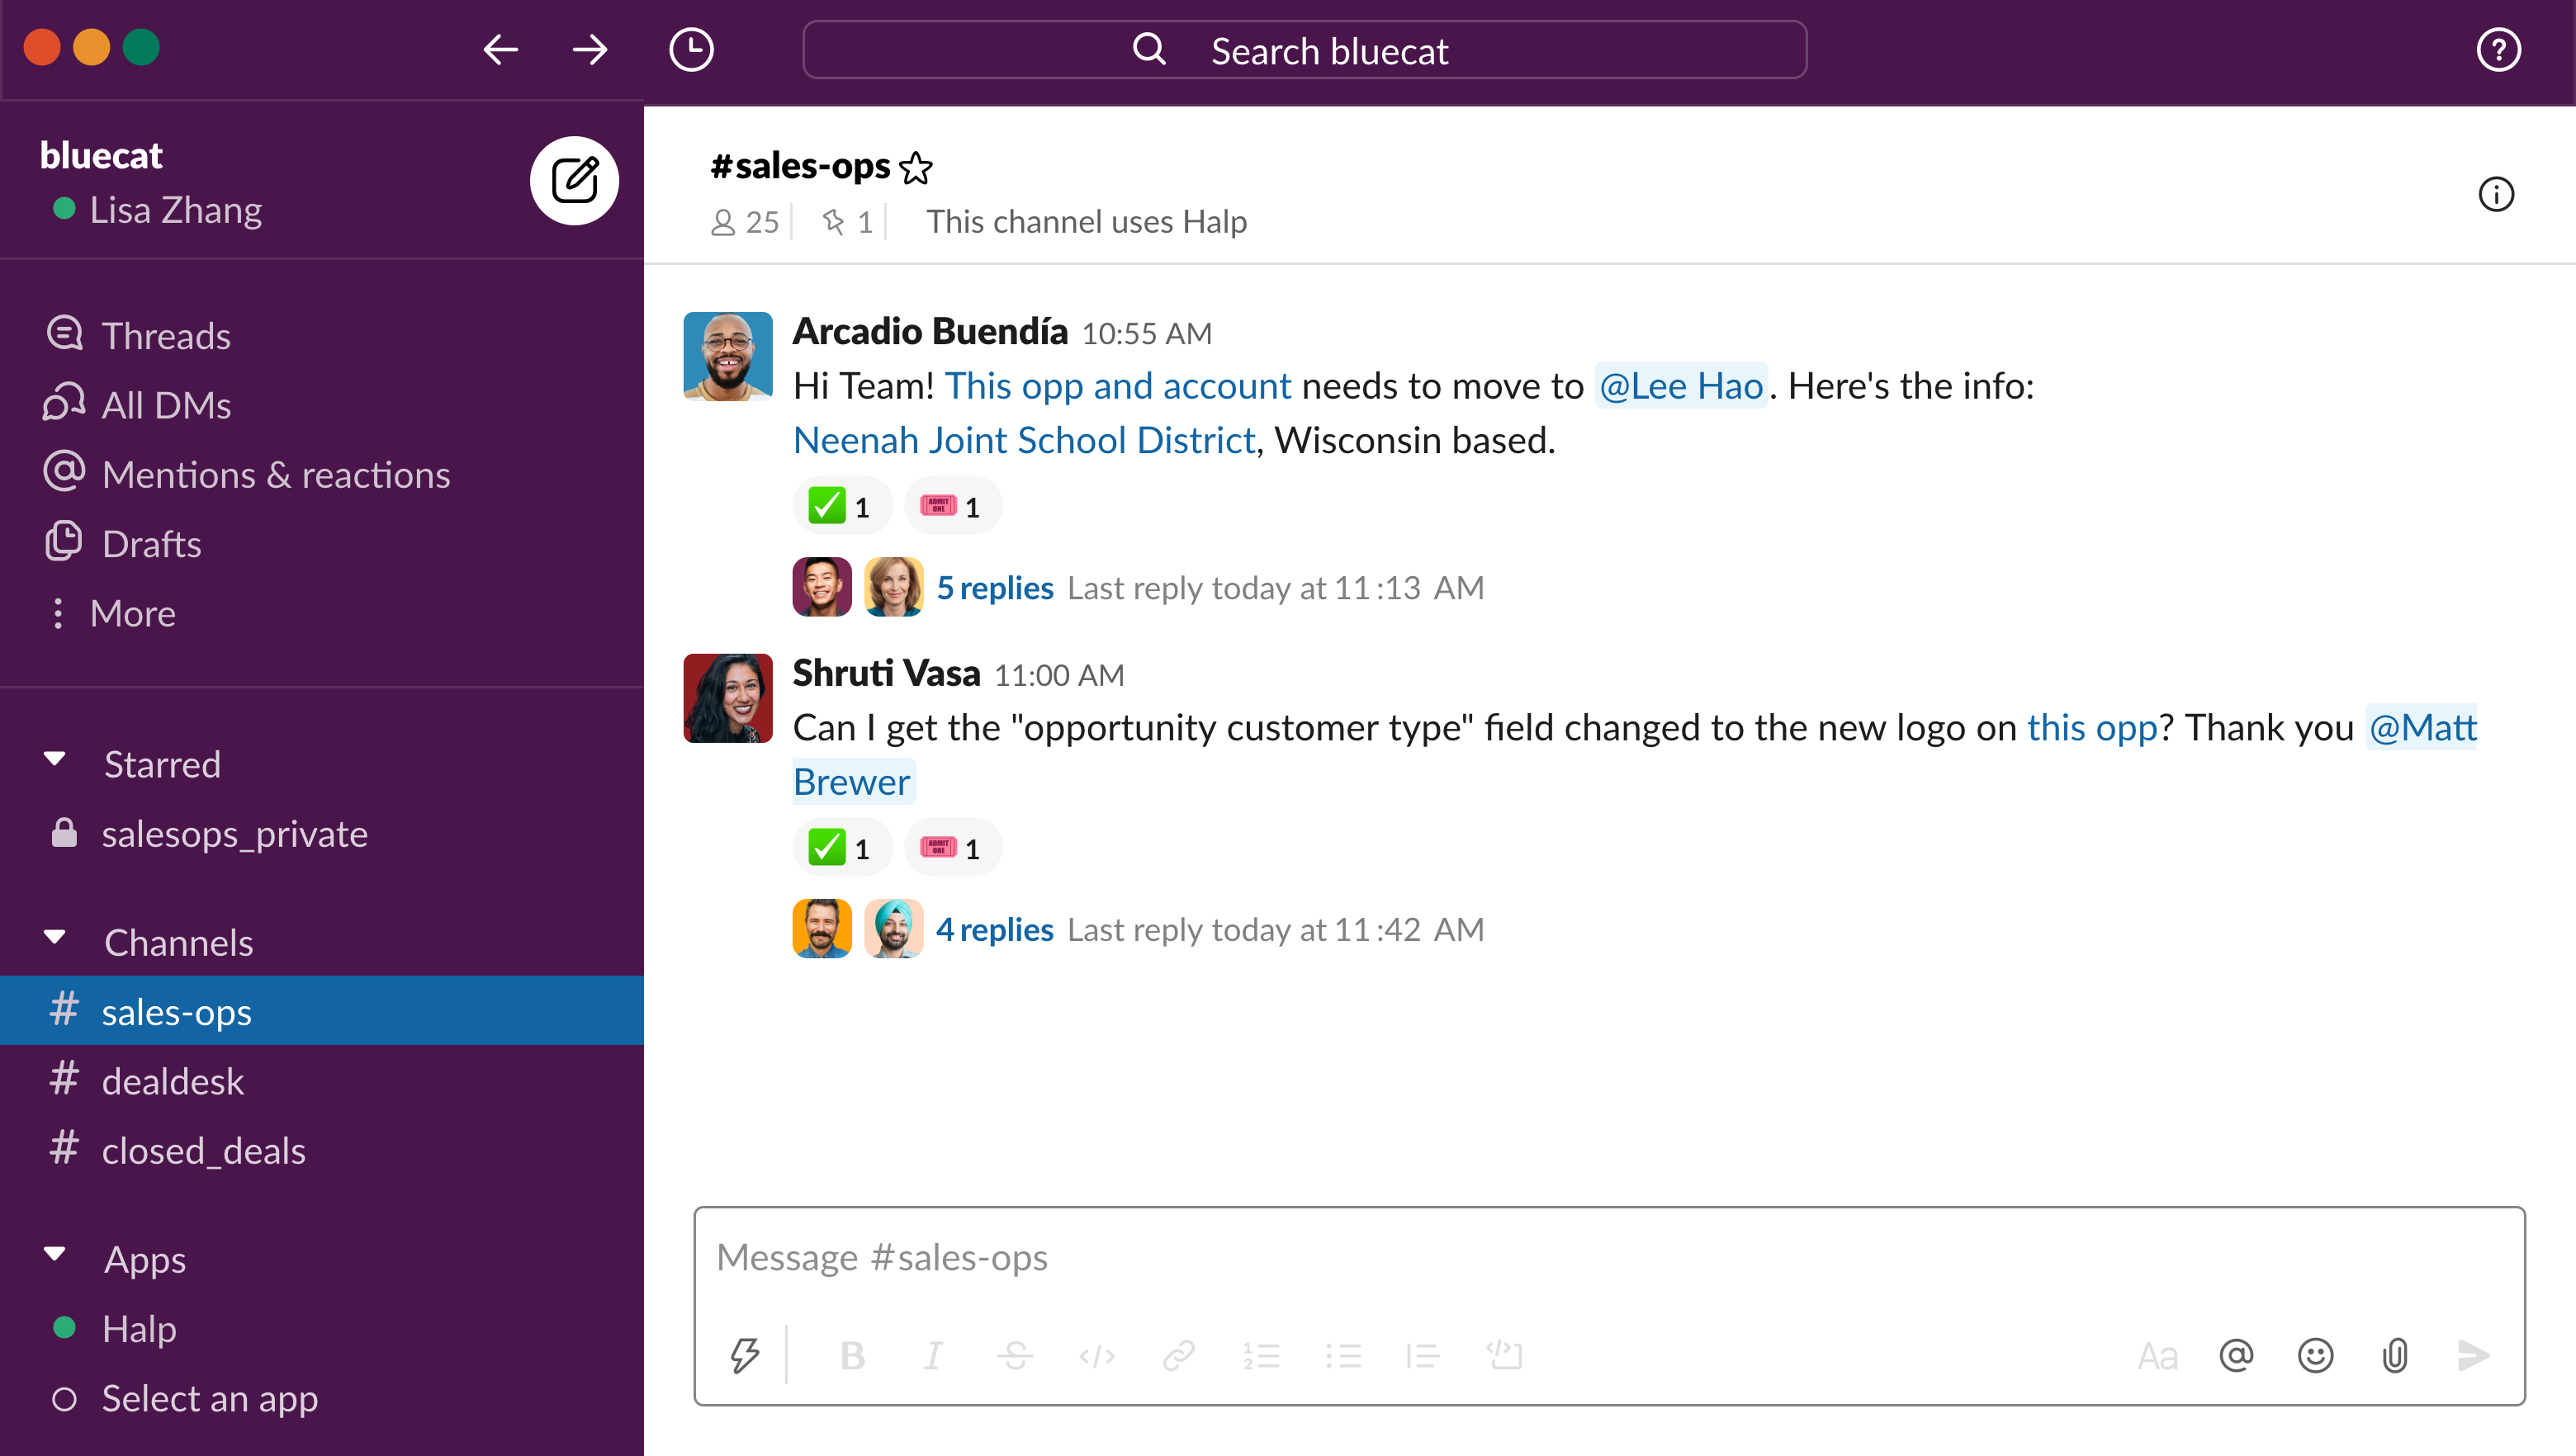 UI image of BlueCat's employees using Halp with Slack's channels and automations